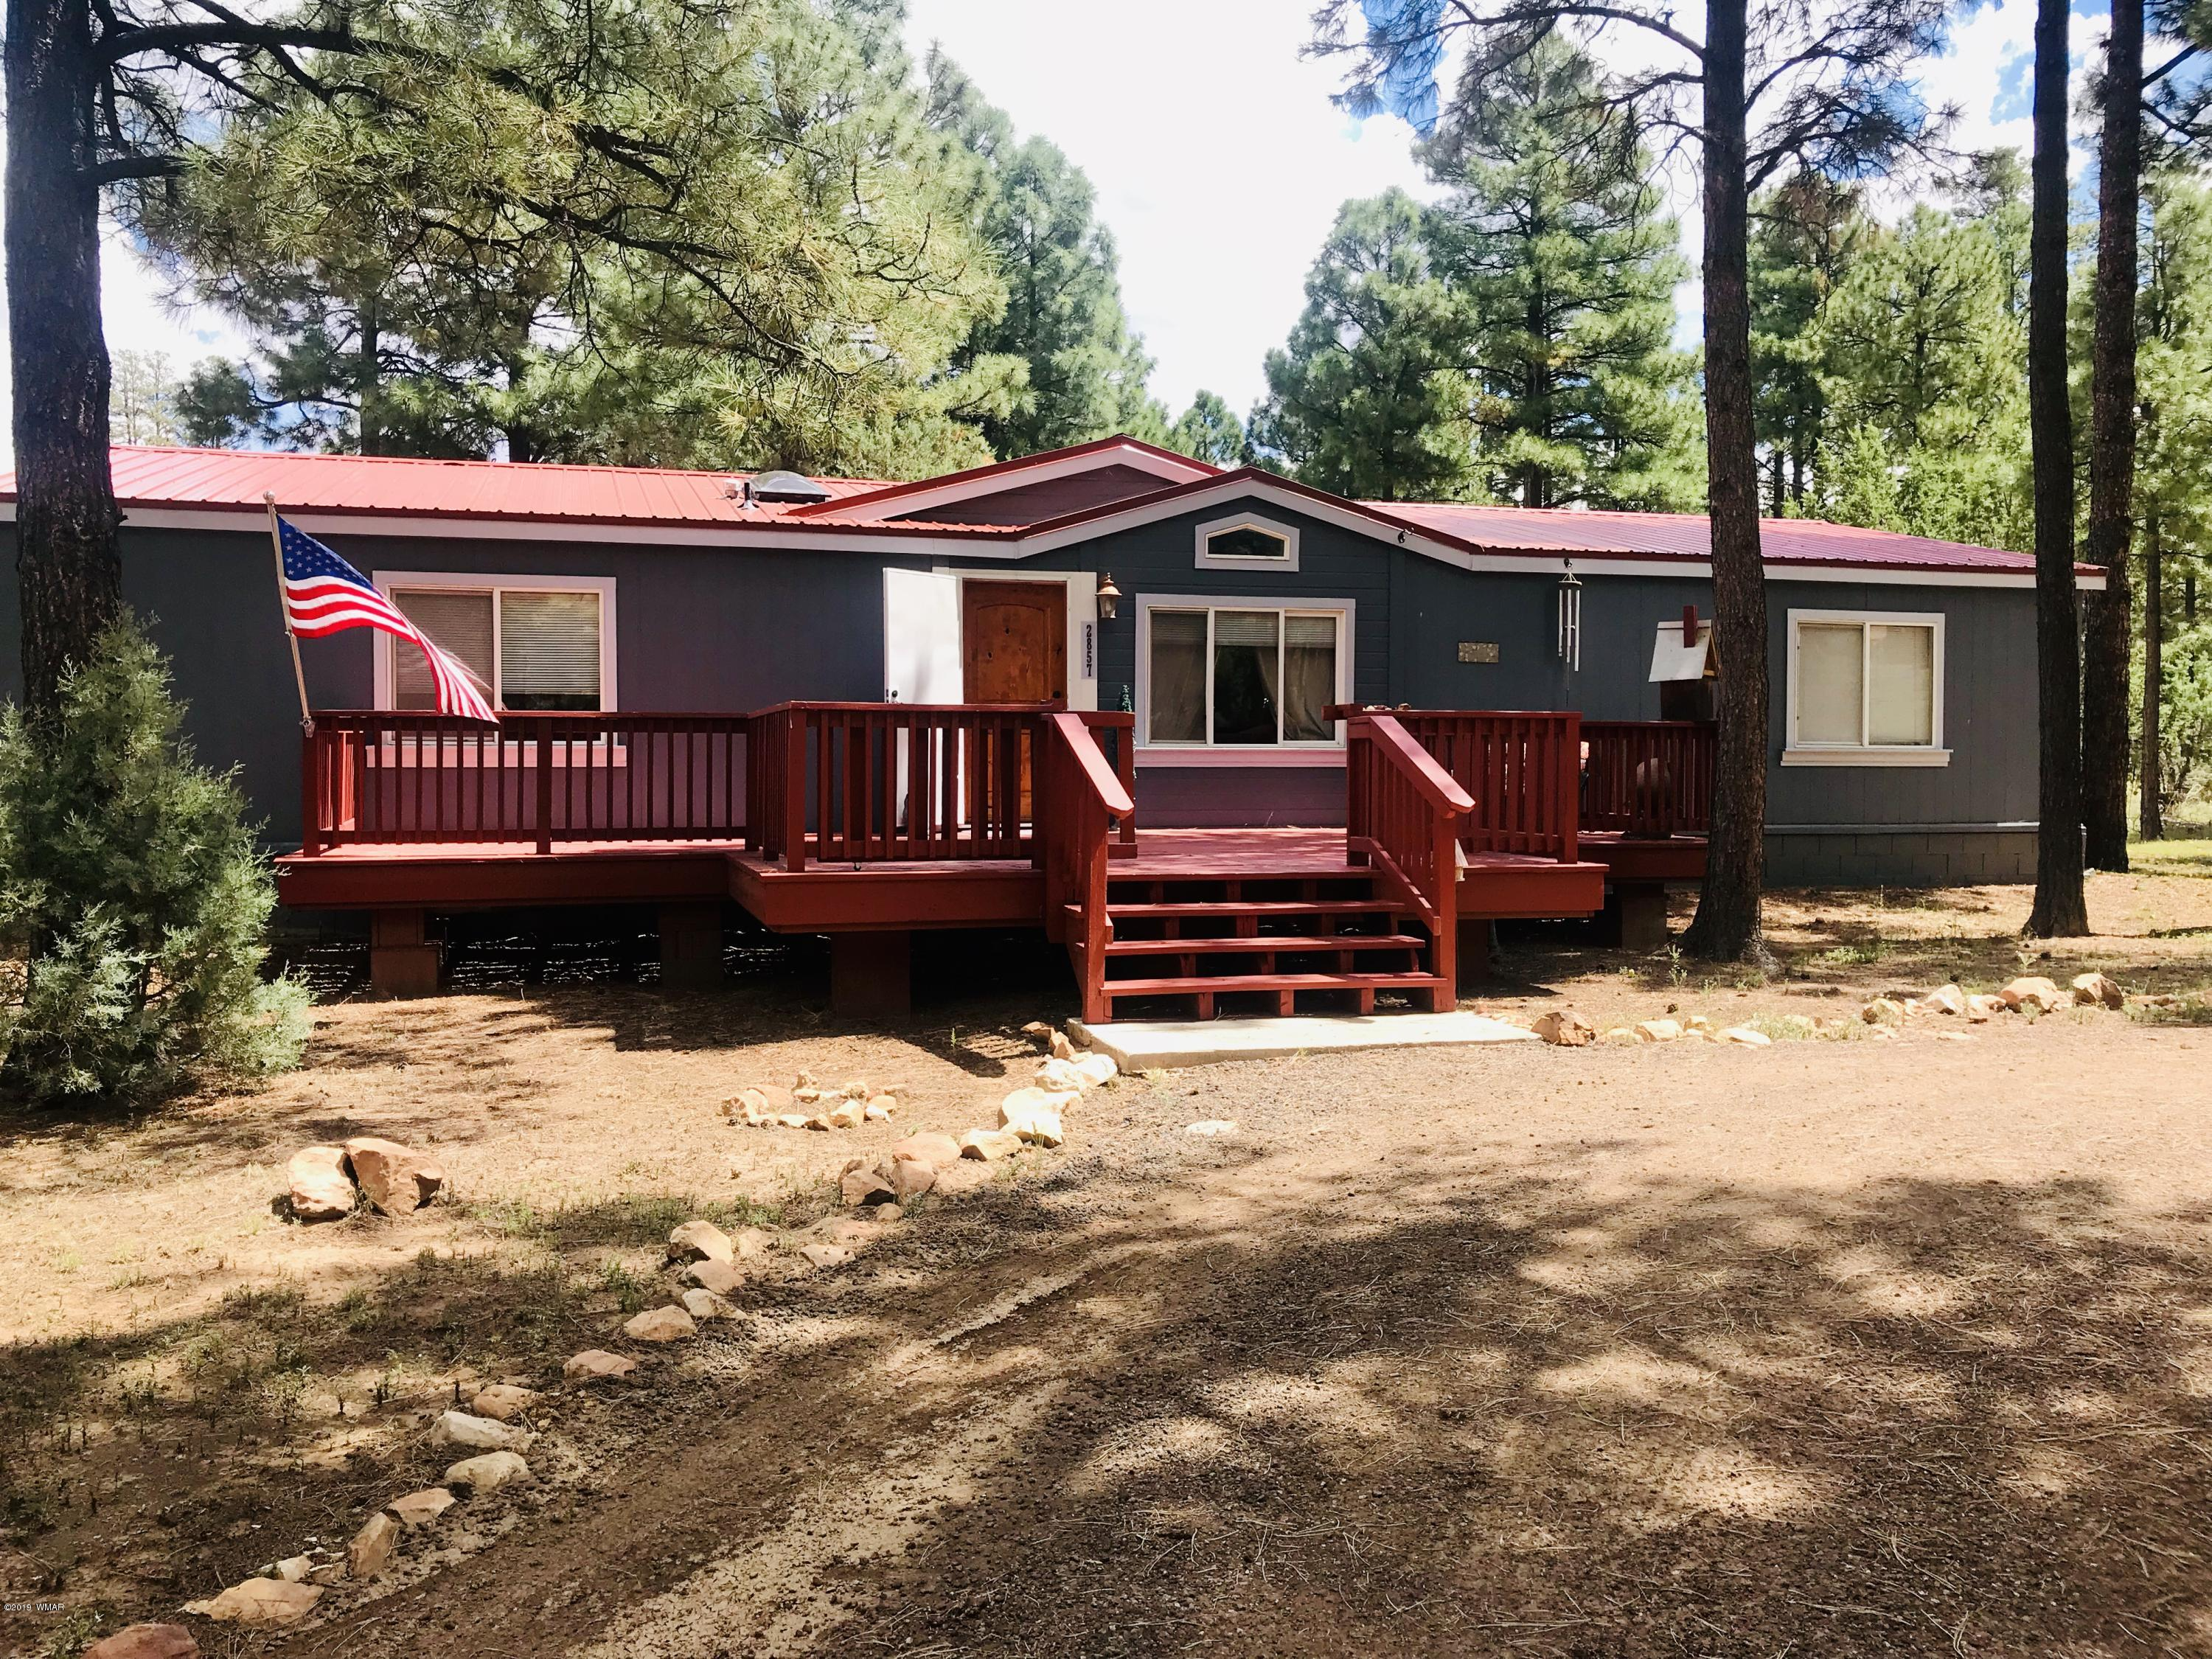 Do you like to take your horses or toys out to ride in the forest? Then this property is for you!! It is right on the edge of the National Forest and located in the tall pines!! This highly upgraded split floor plan manufactured home is nestled amongst tall pines on a private dead end road. Open floor plan with a large great room and dining room. The oversized kitchen features granite, ss appliances and a butcher block island. Granite and custom sinks in both baths.